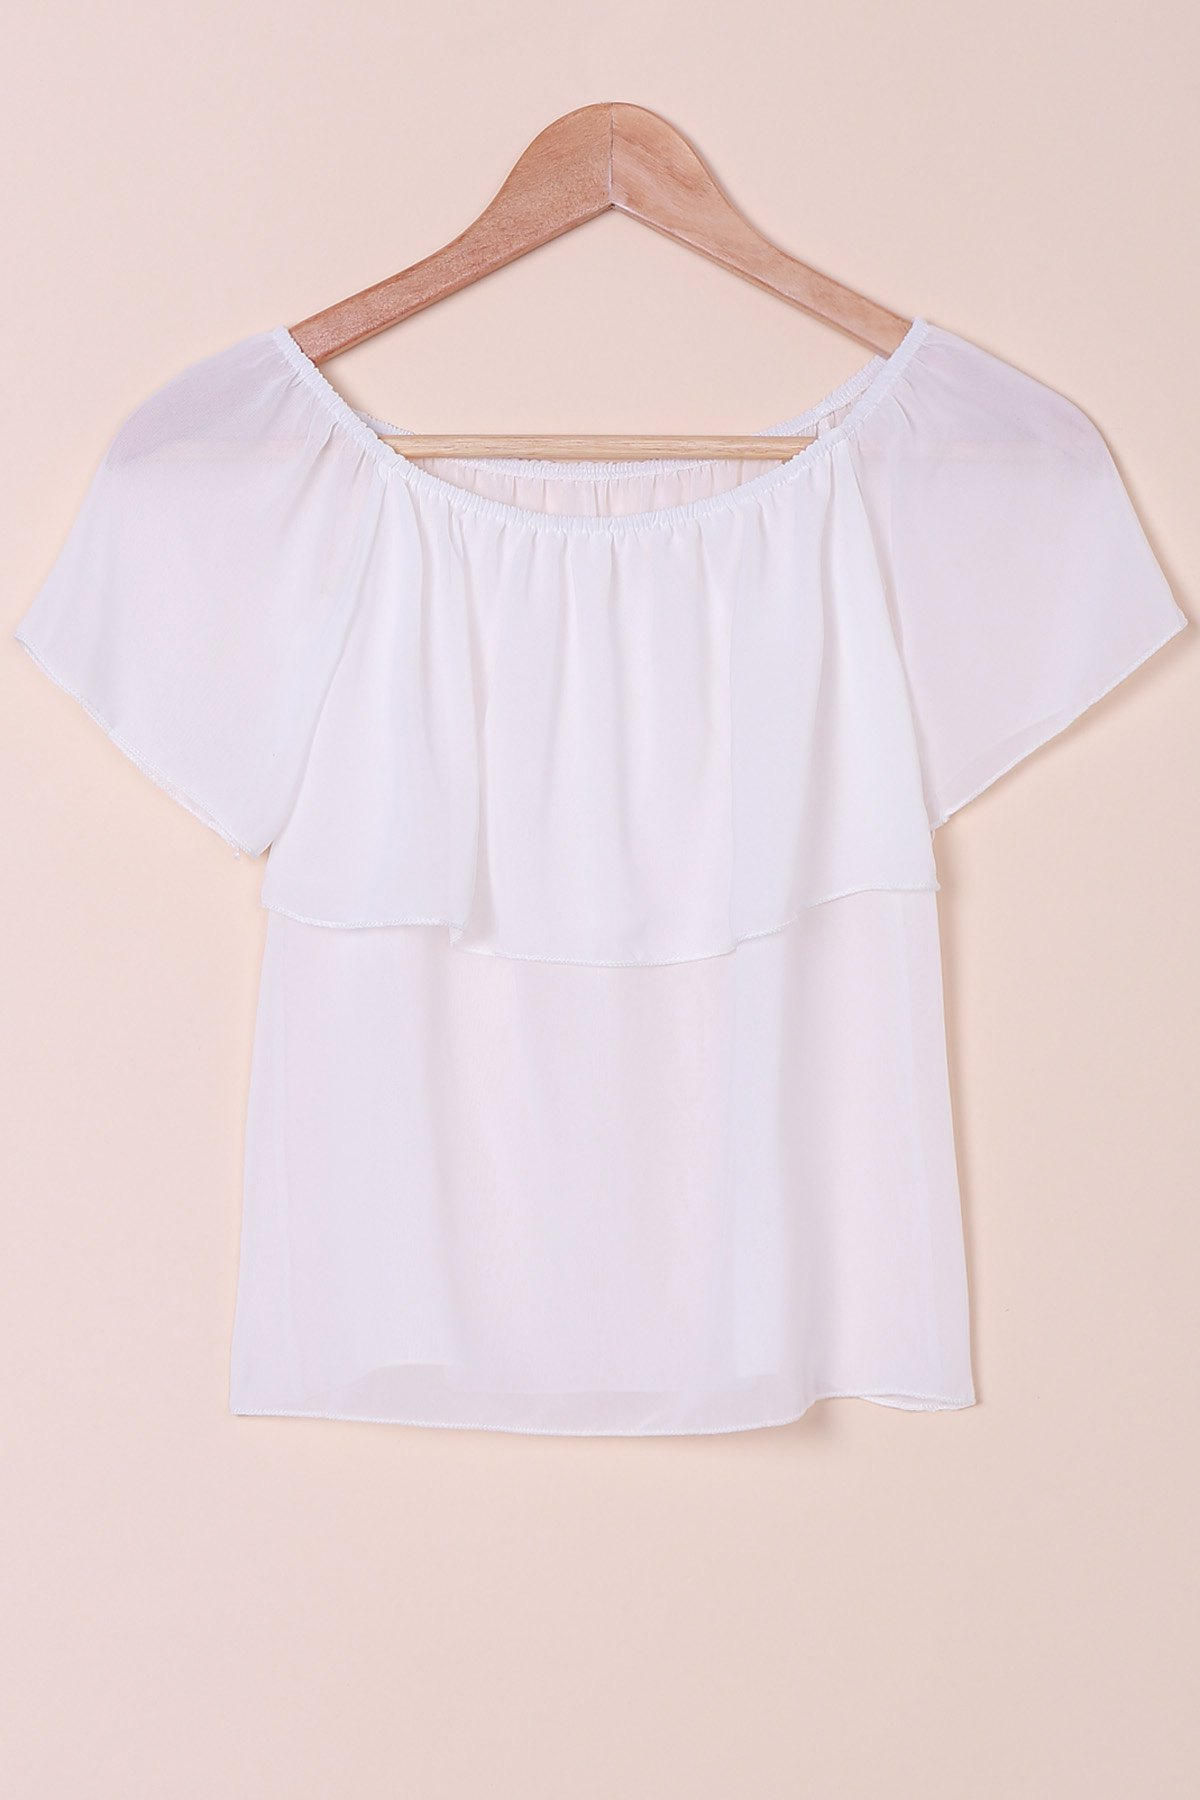 Sexy Style Slash Neck Solid Color Chiffon T-Shirt For Women - WHITE S